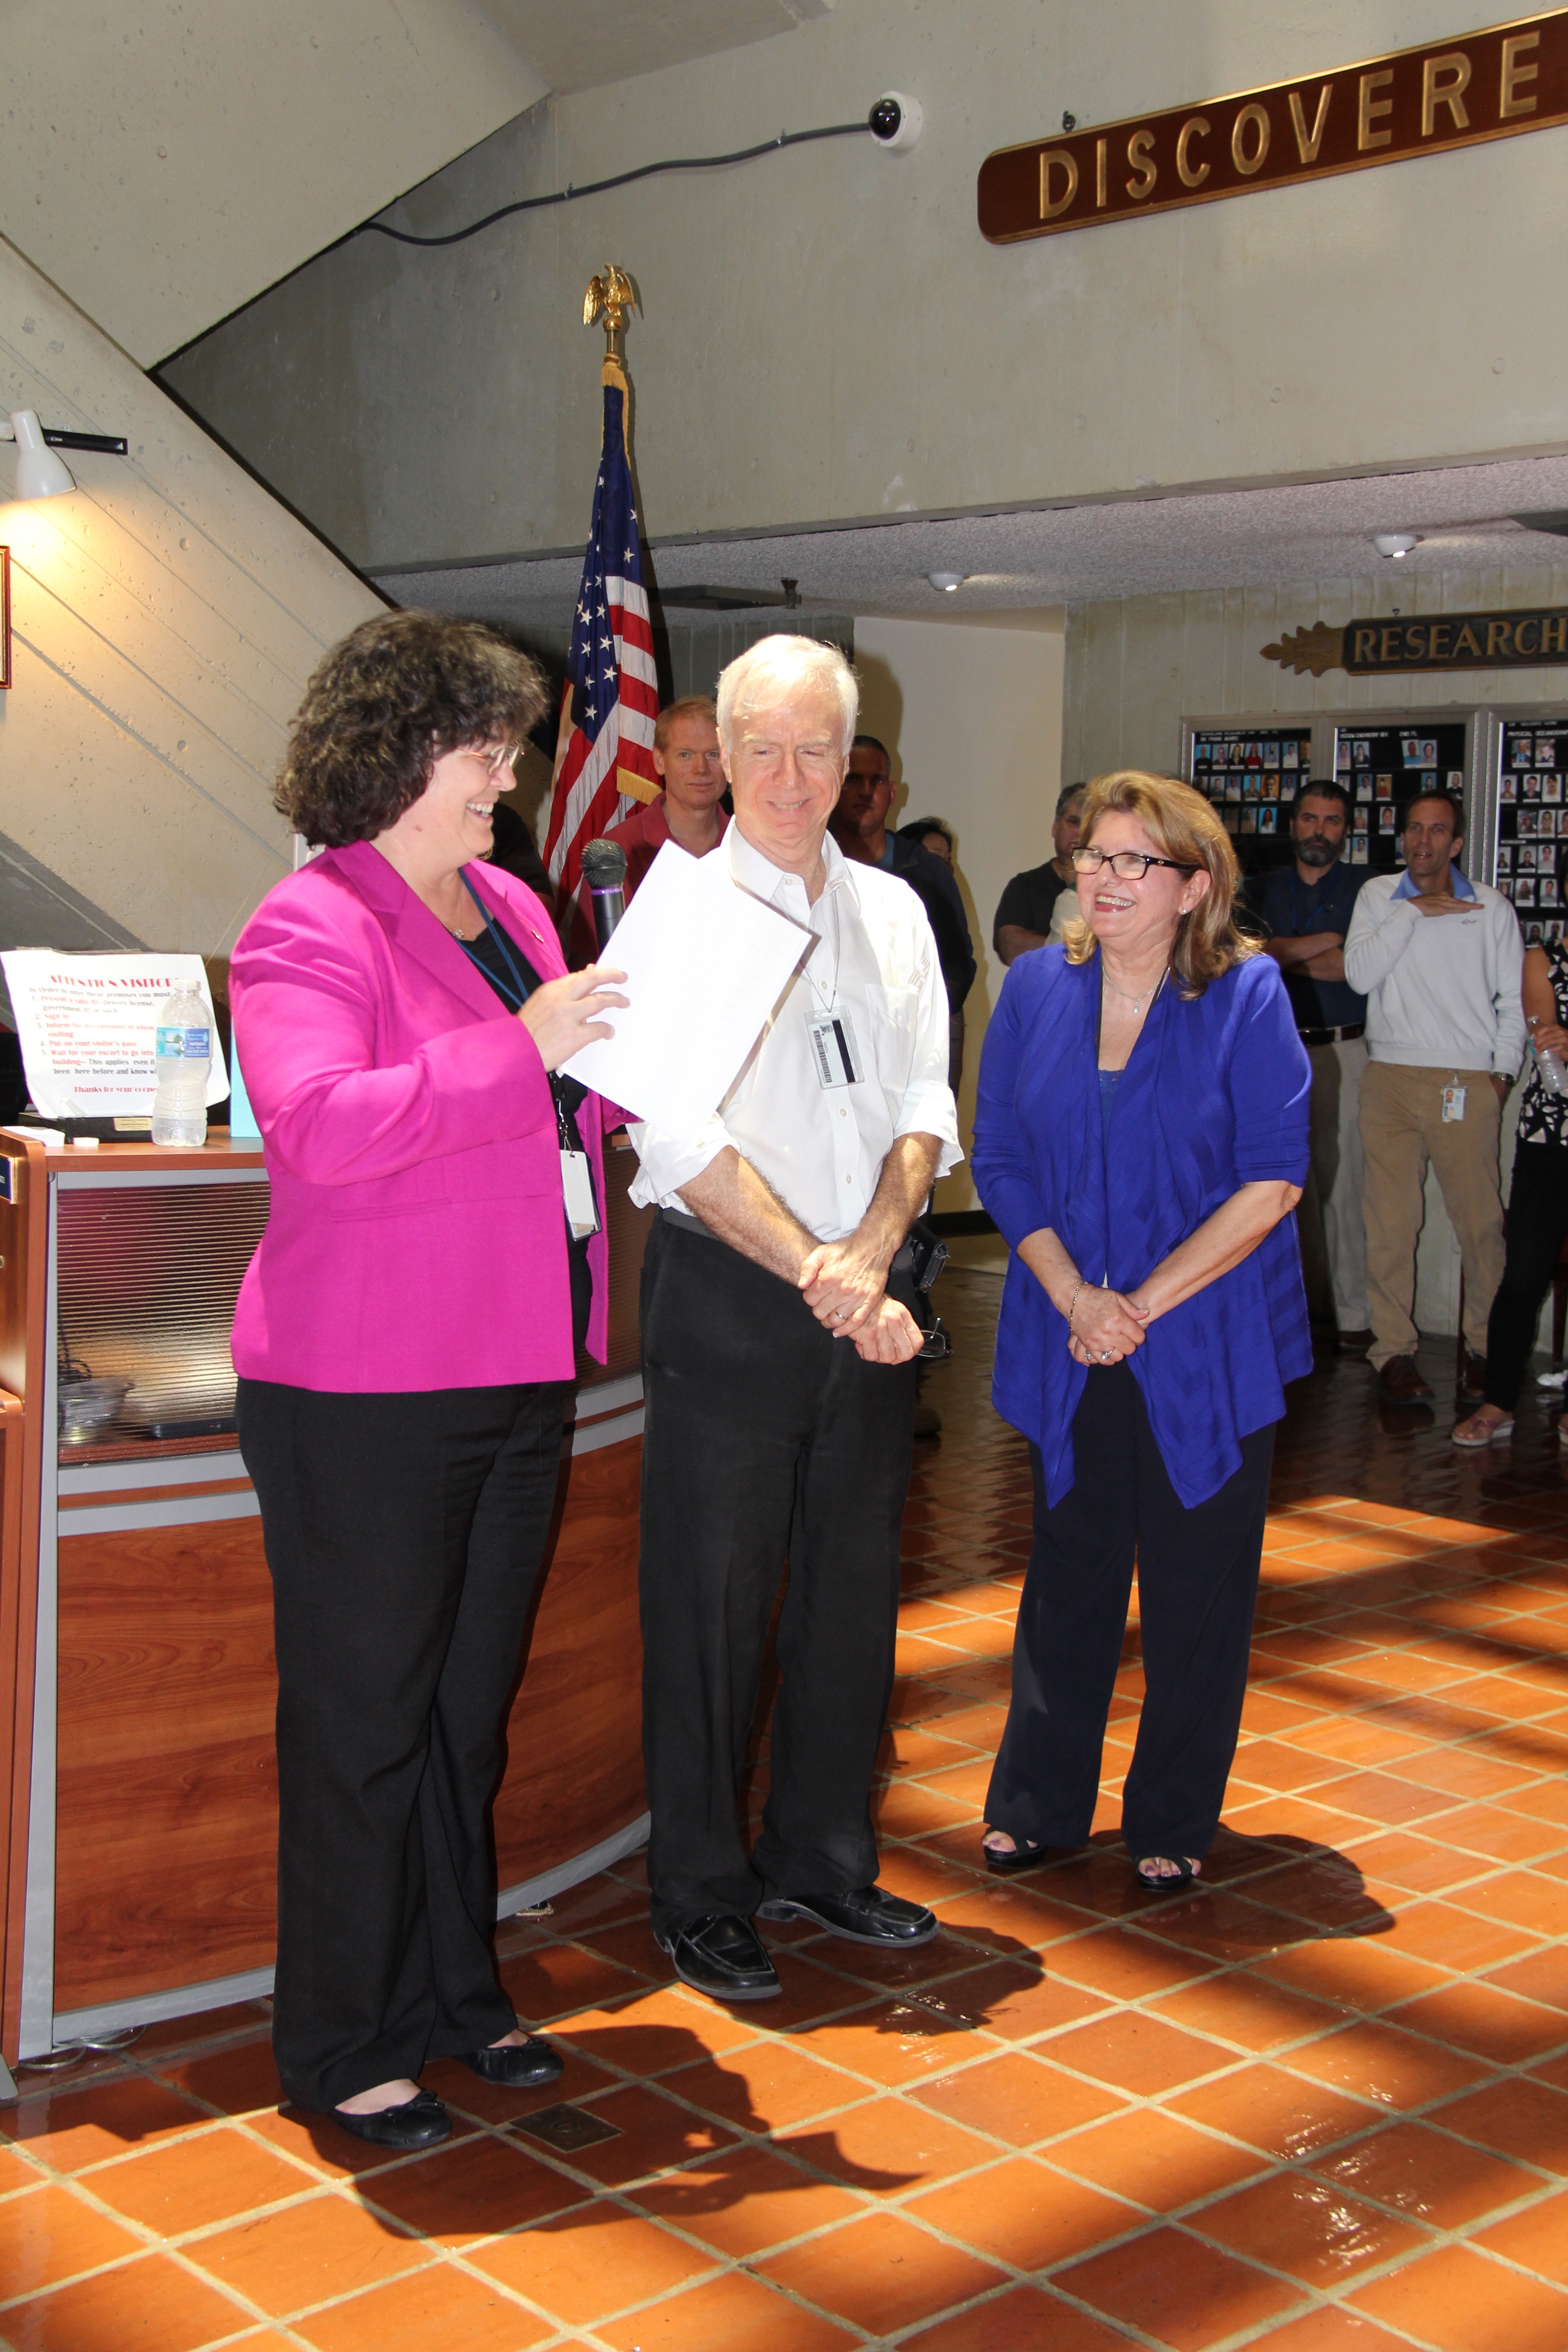 Molly Baringer wishes Gladys a happy retirement. Image credit: NOAA